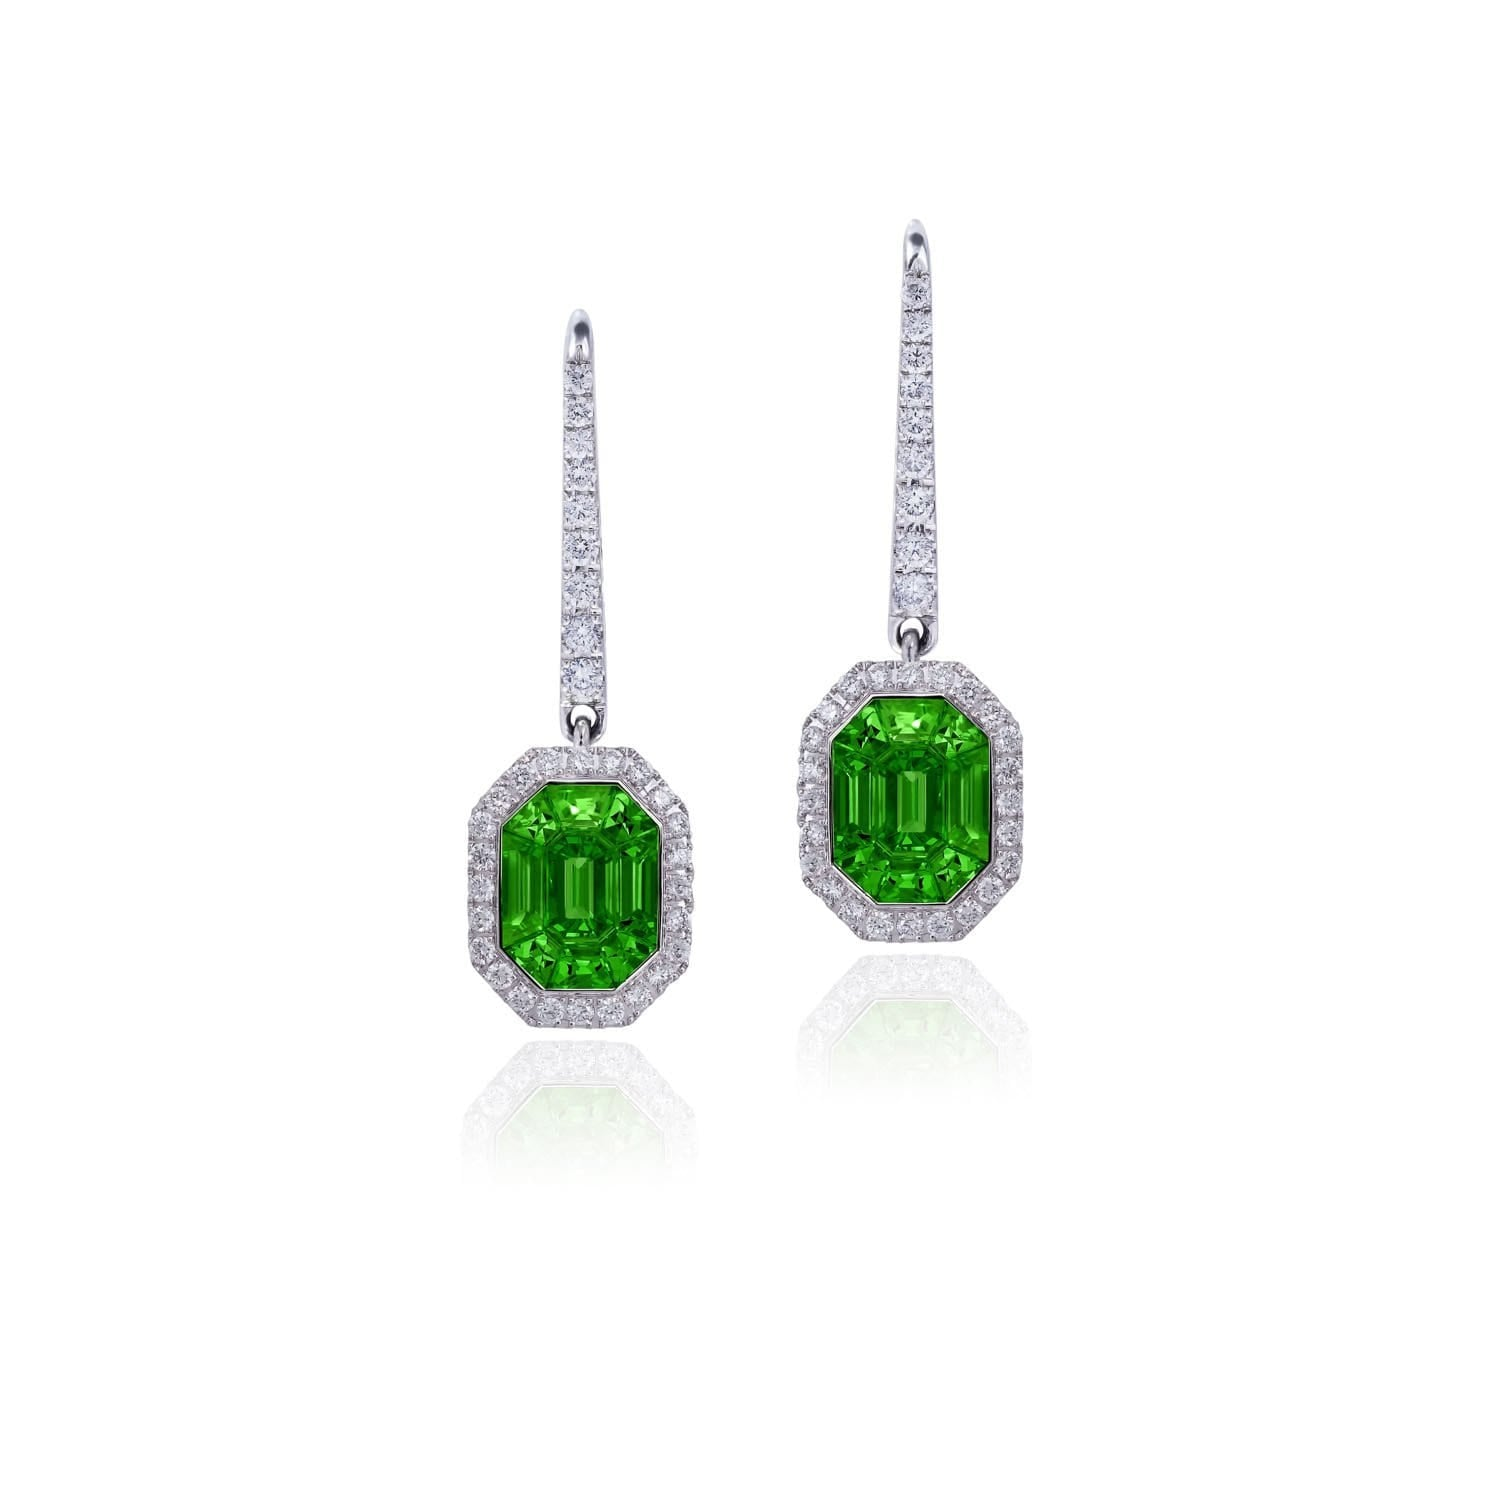 MUSE PANTONI Earrings - STENZHORN JEWELLERY